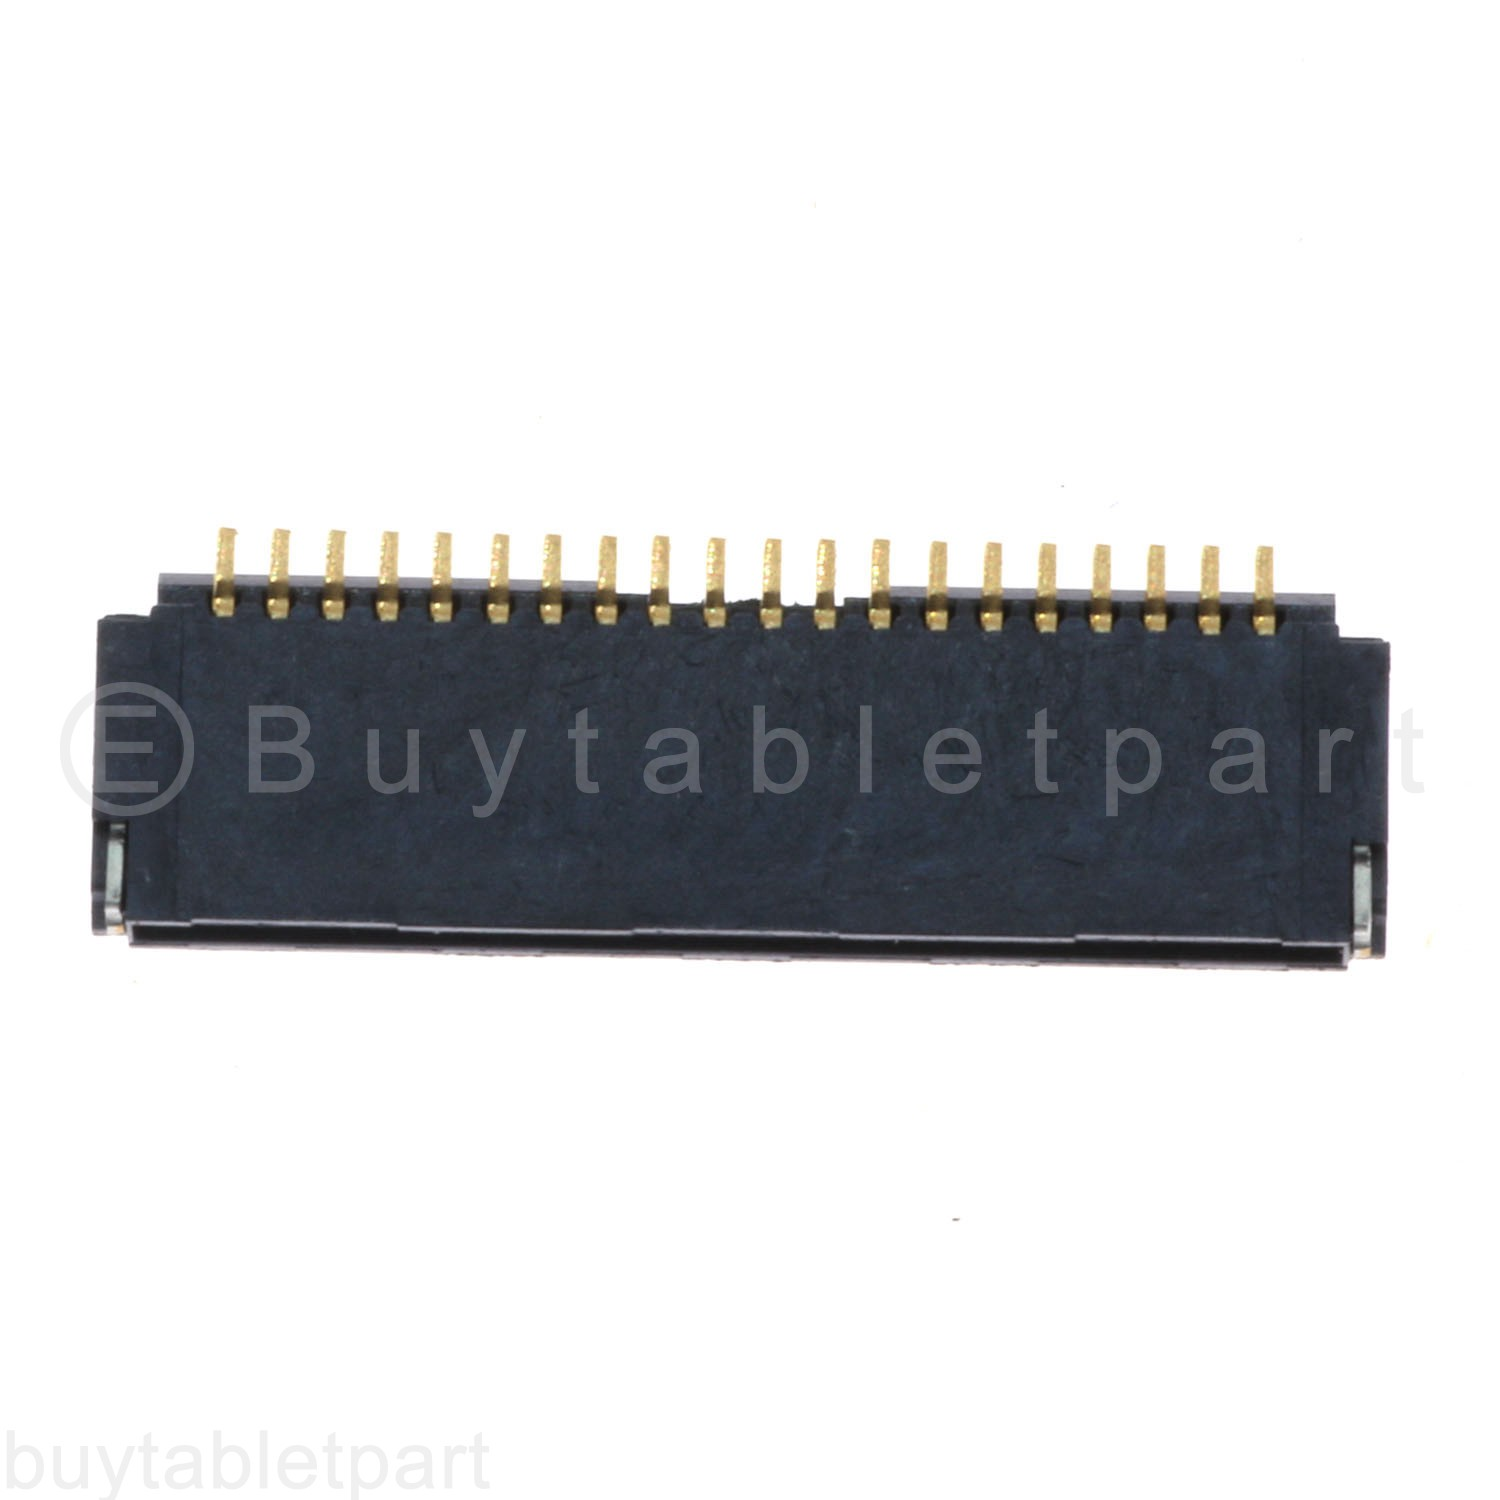 Keyboard Connector for MacBook Air Trackpad A1465 A1466 2013 2014 2015 20-Pin